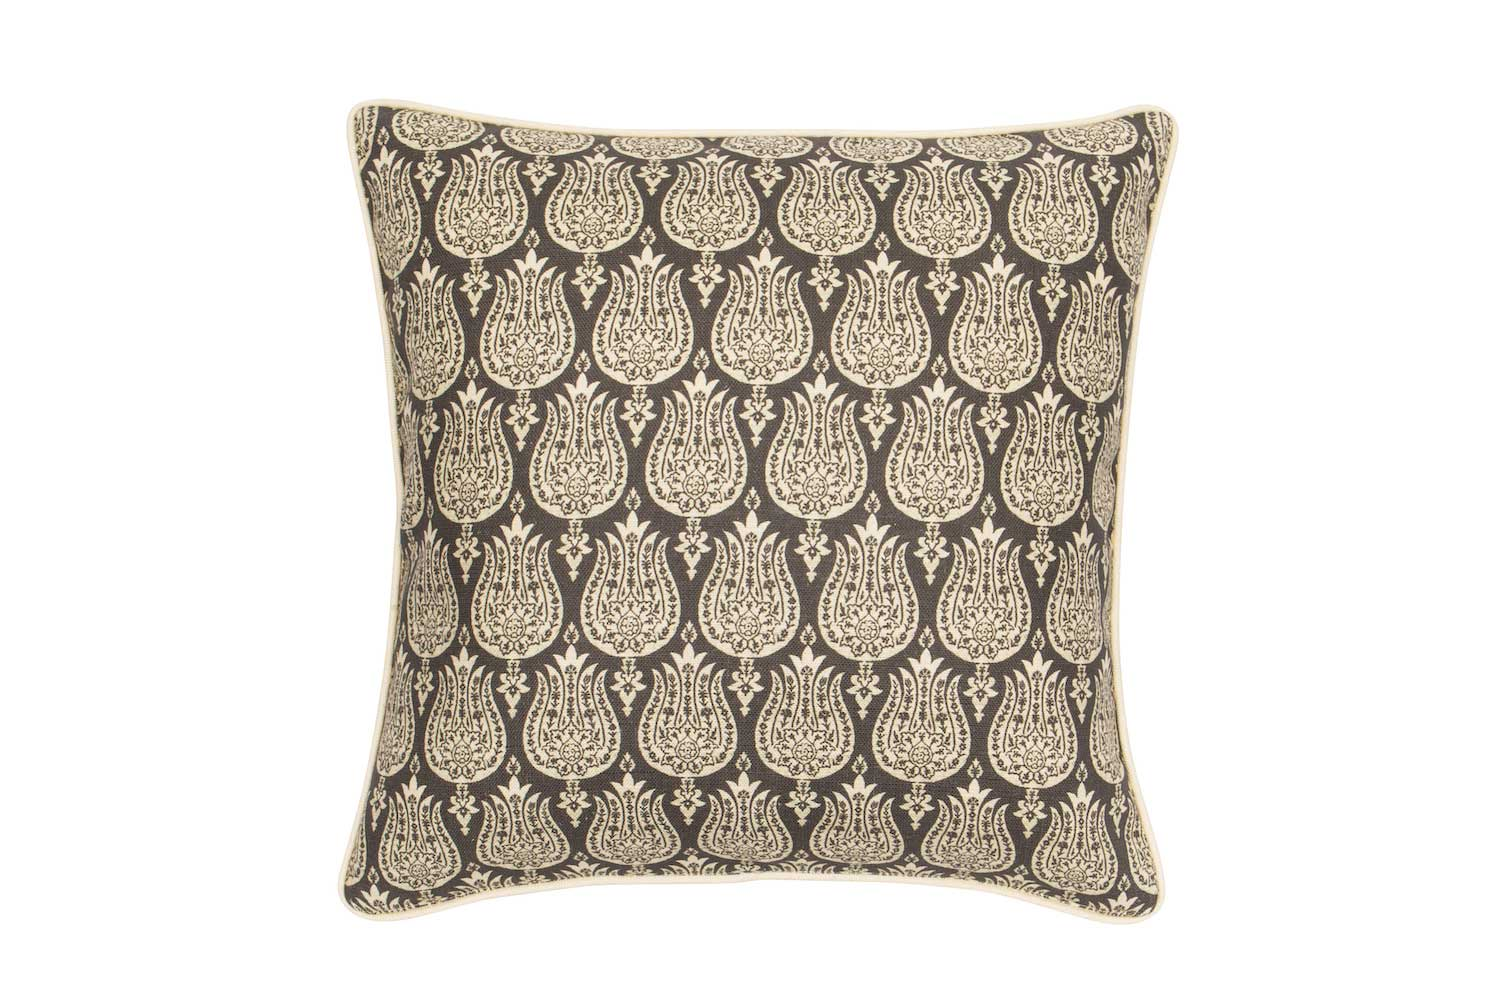 Abbot Atlas ottoman tulip stone fabric linen printed pillow cushion